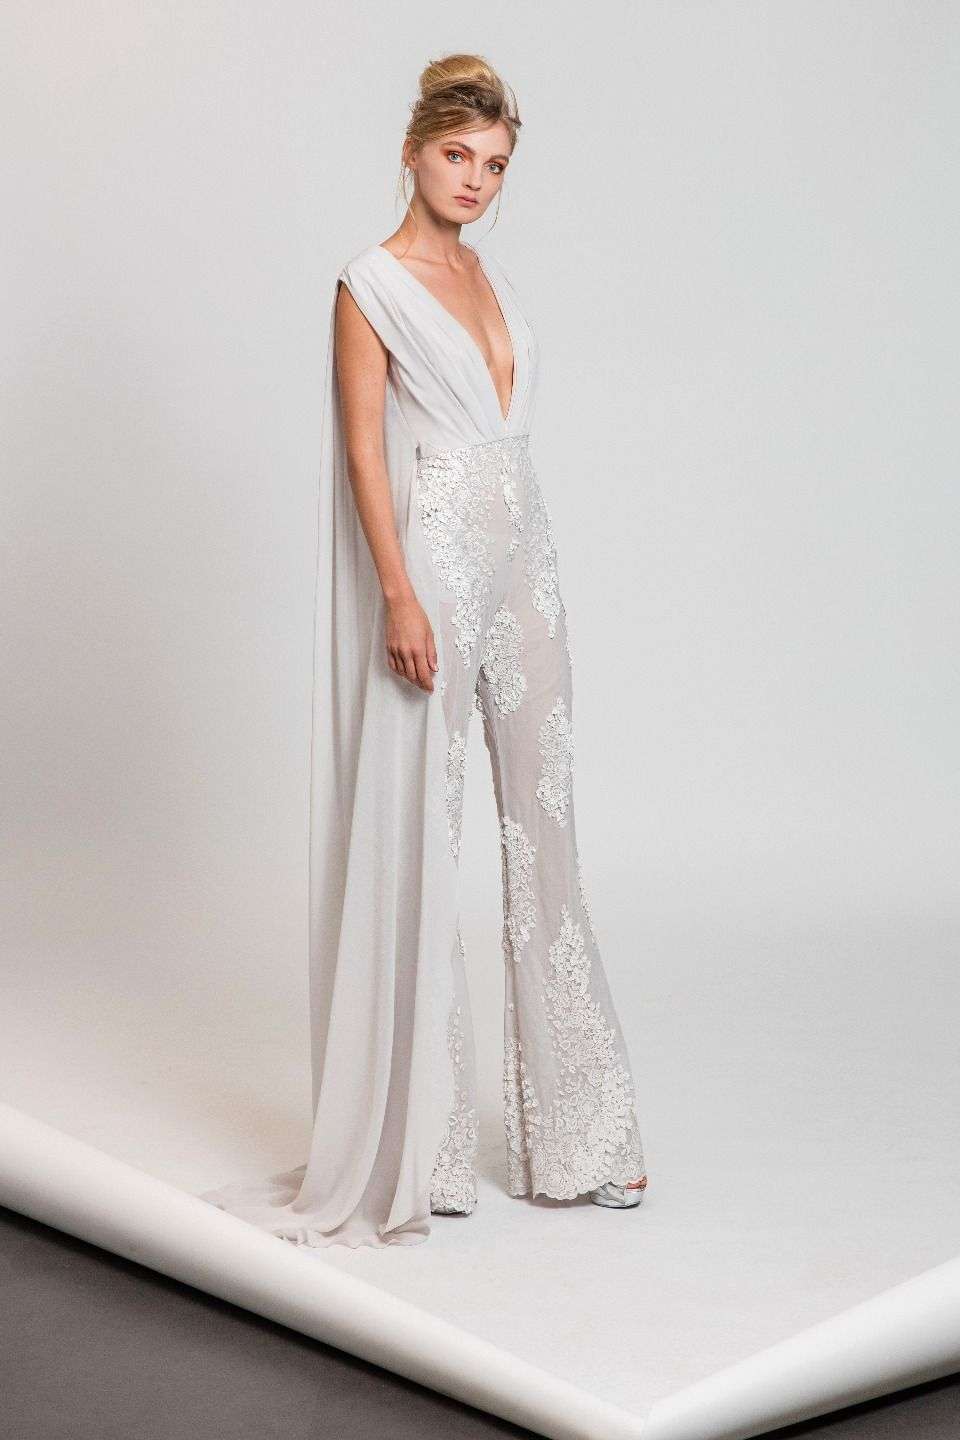 pearl white silk jumpsuit with deep v neckline and